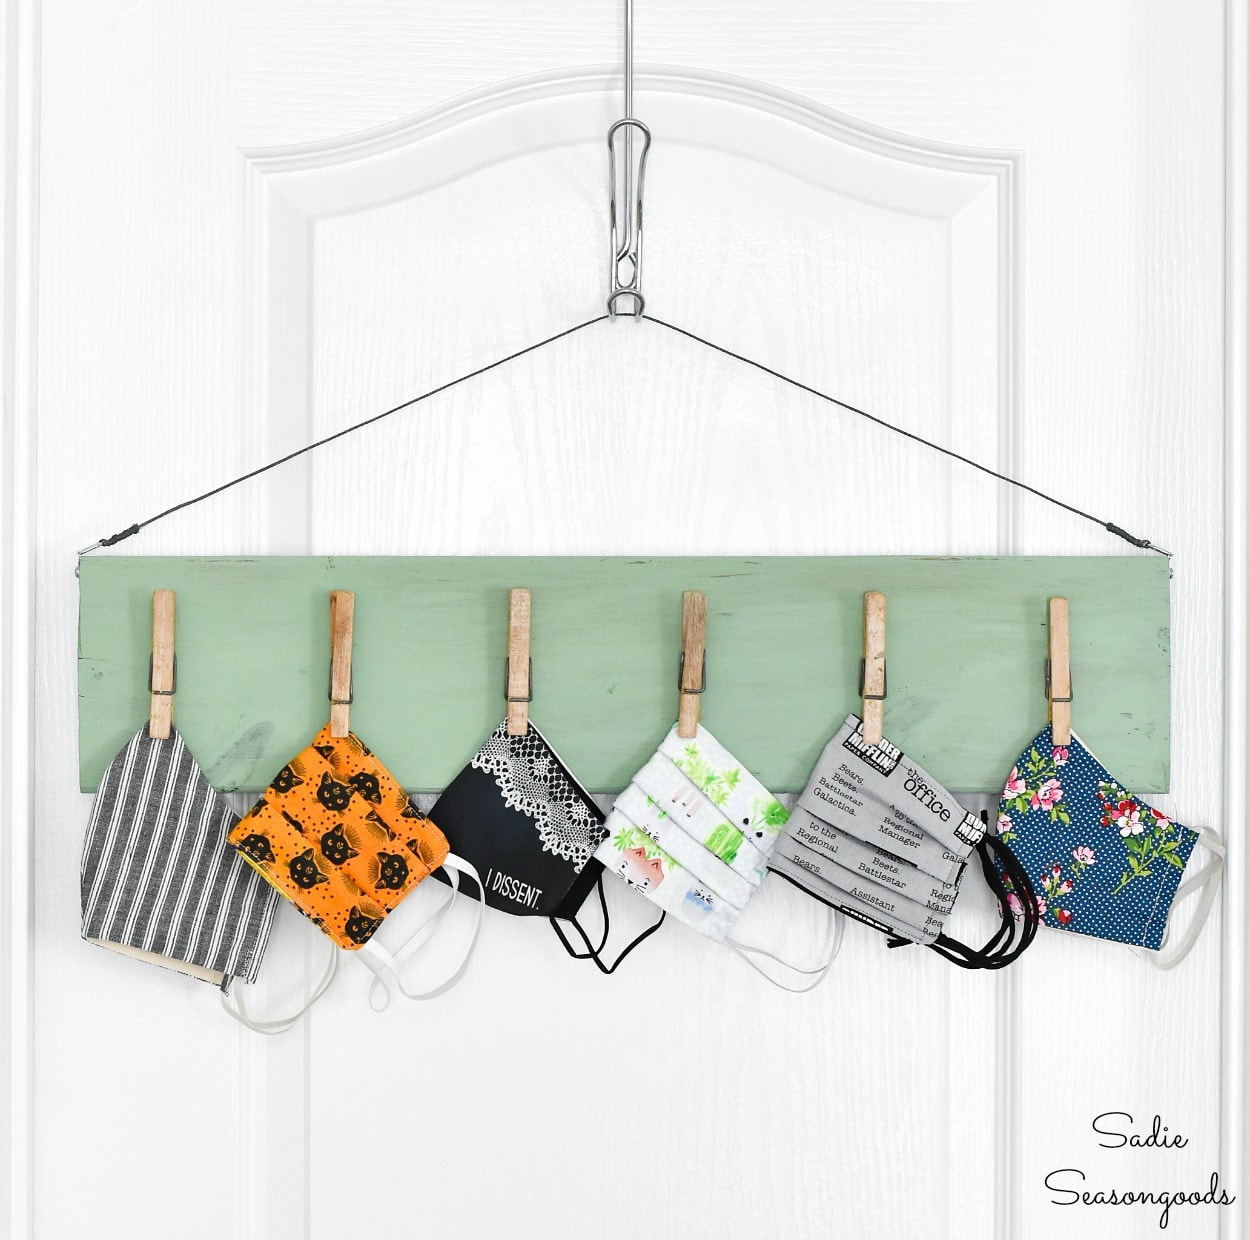 Mask organizer or face mask storage for the front door